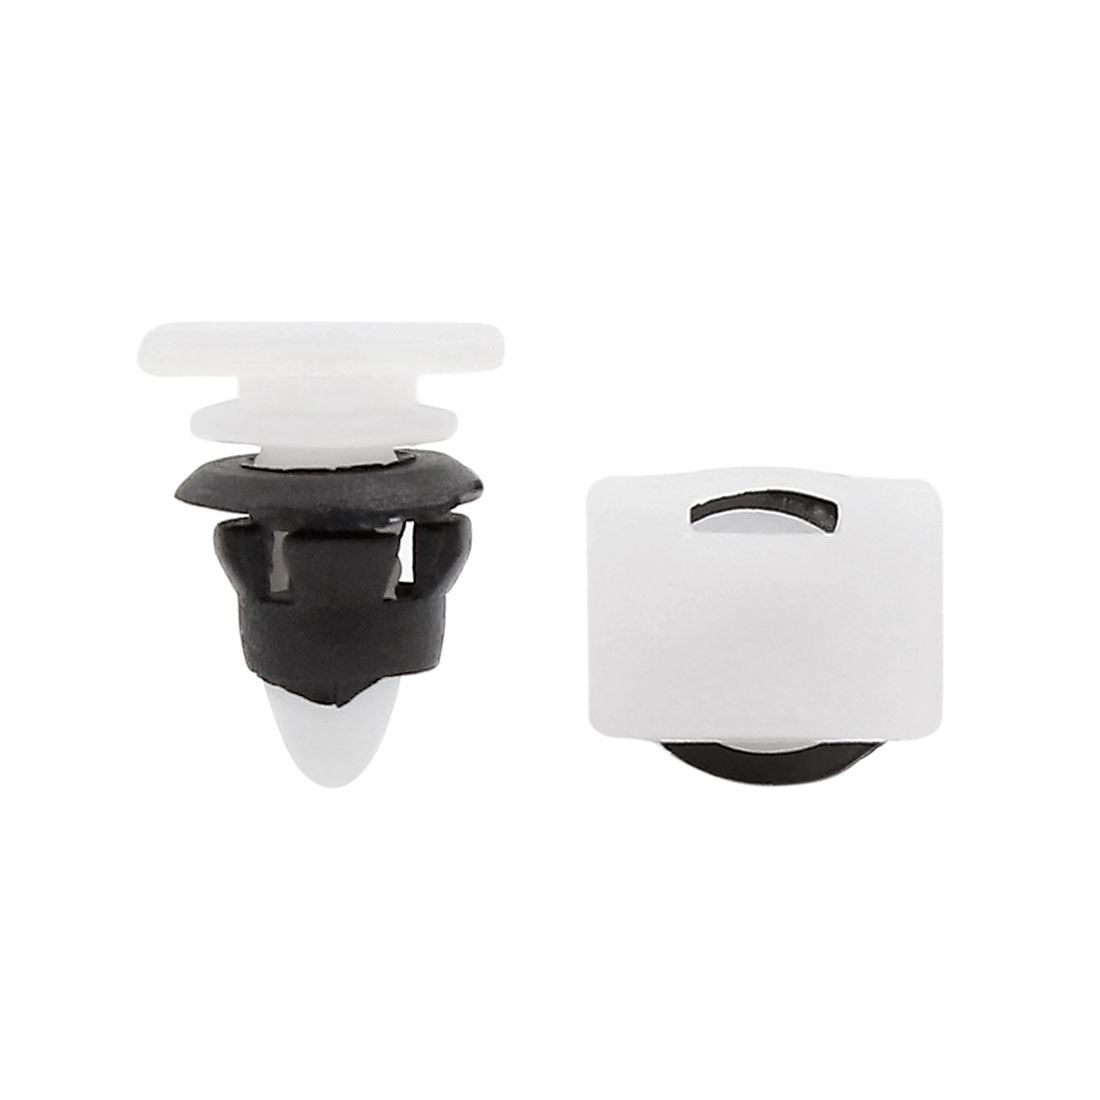 30PCS 10mm Hole White Black Plastic Rivet Panel Fixings Clips for Car Vehicle